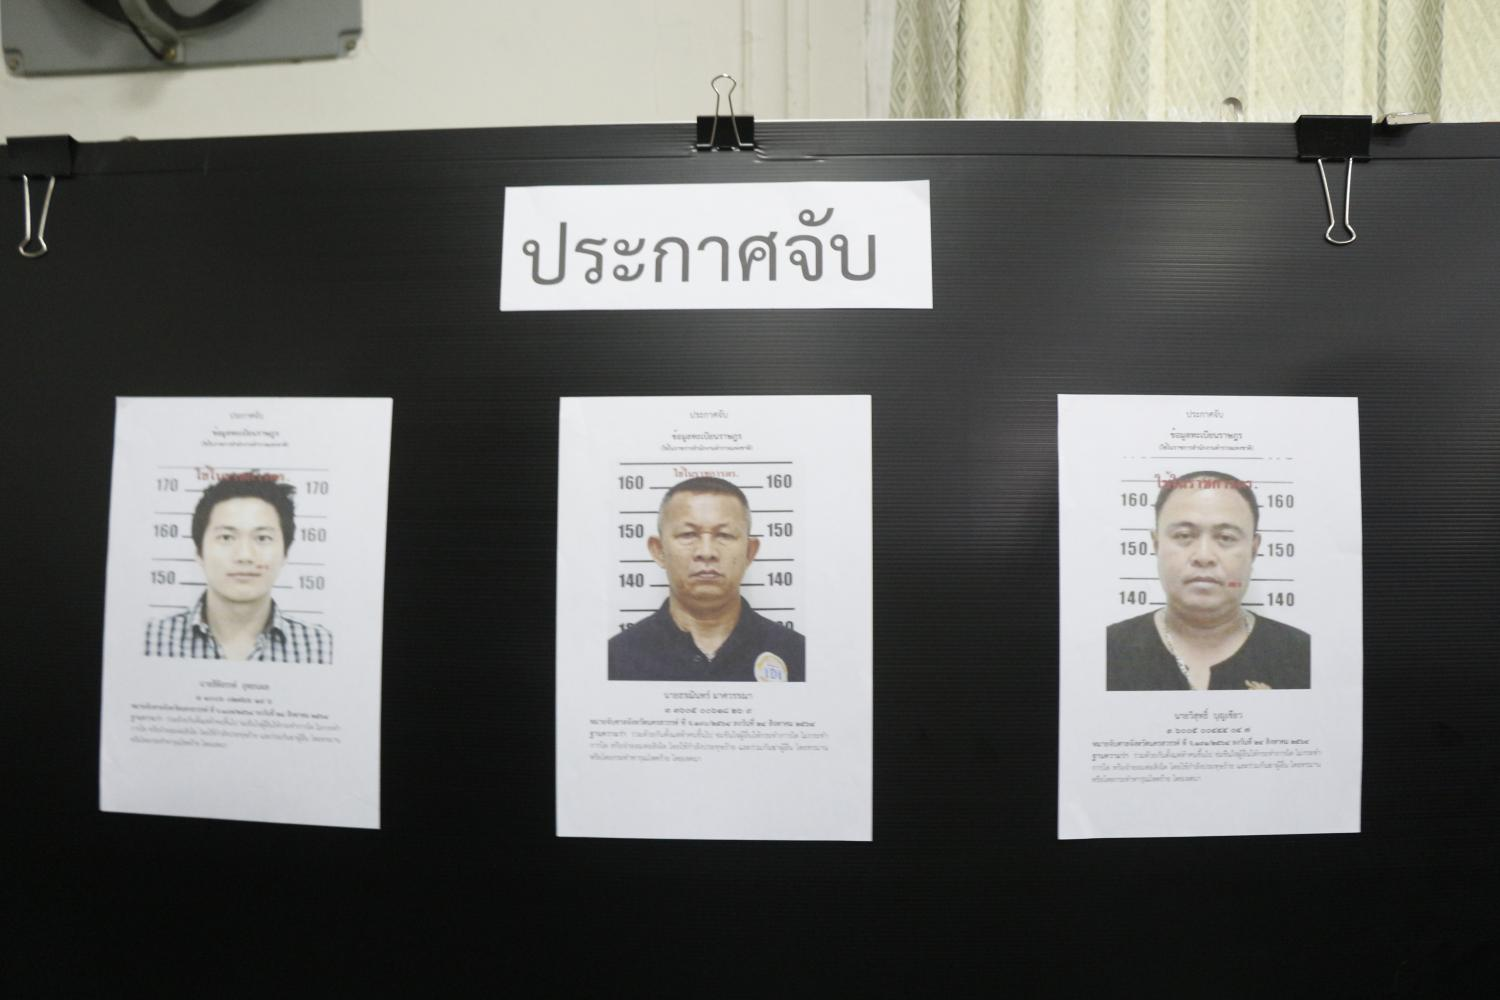 A copy of the warrant for the arrest of Pol Col Thitisan Utthanaphon, left, is posted along with those for other suspects on a notice board displayed during a press conference in Nakhon Sawan yesterday.(Photo: Chalit Phumruang)